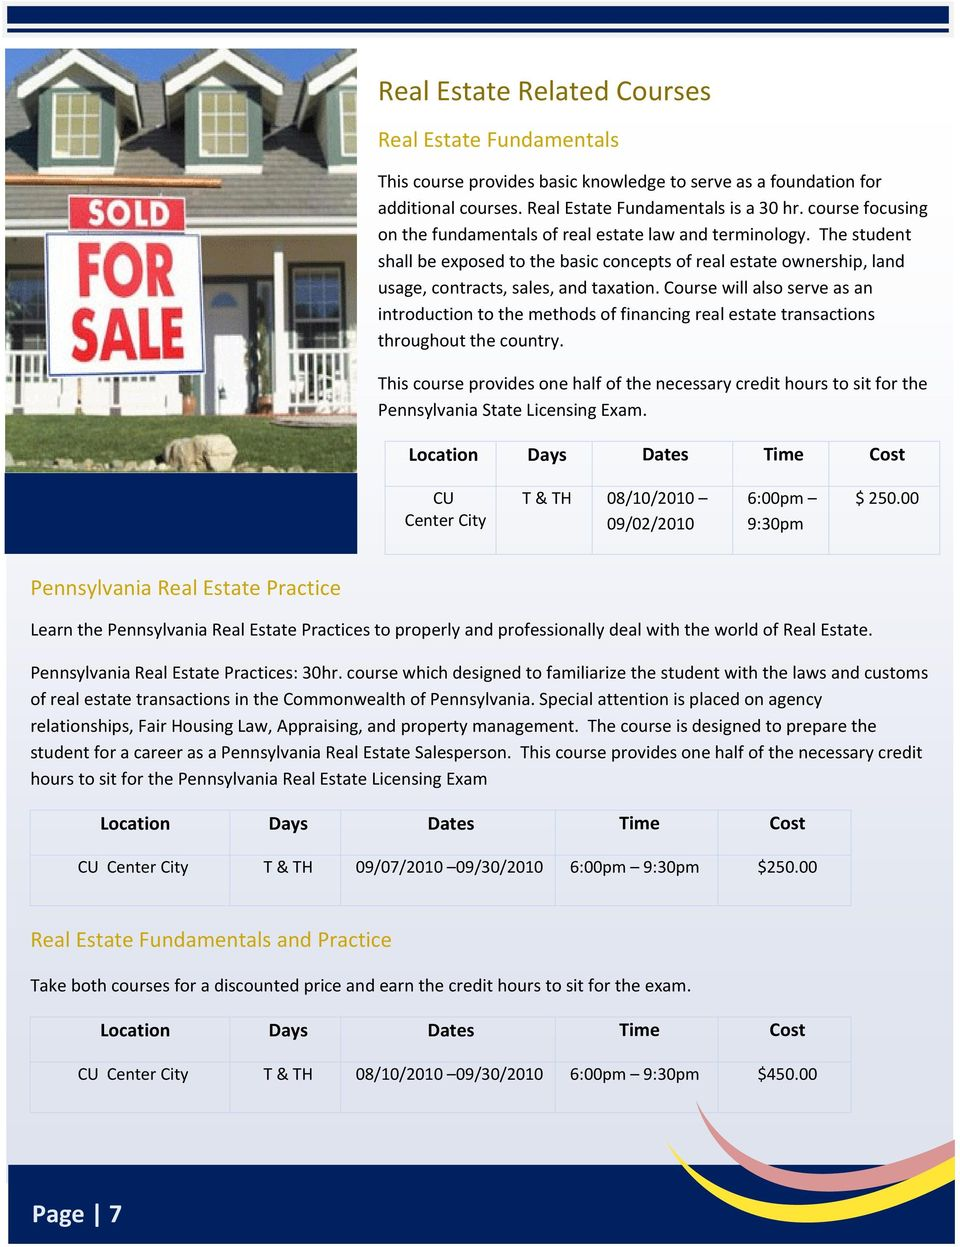 Course will also serve as an introduction to the methods of financing real estate transactions throughout the country.